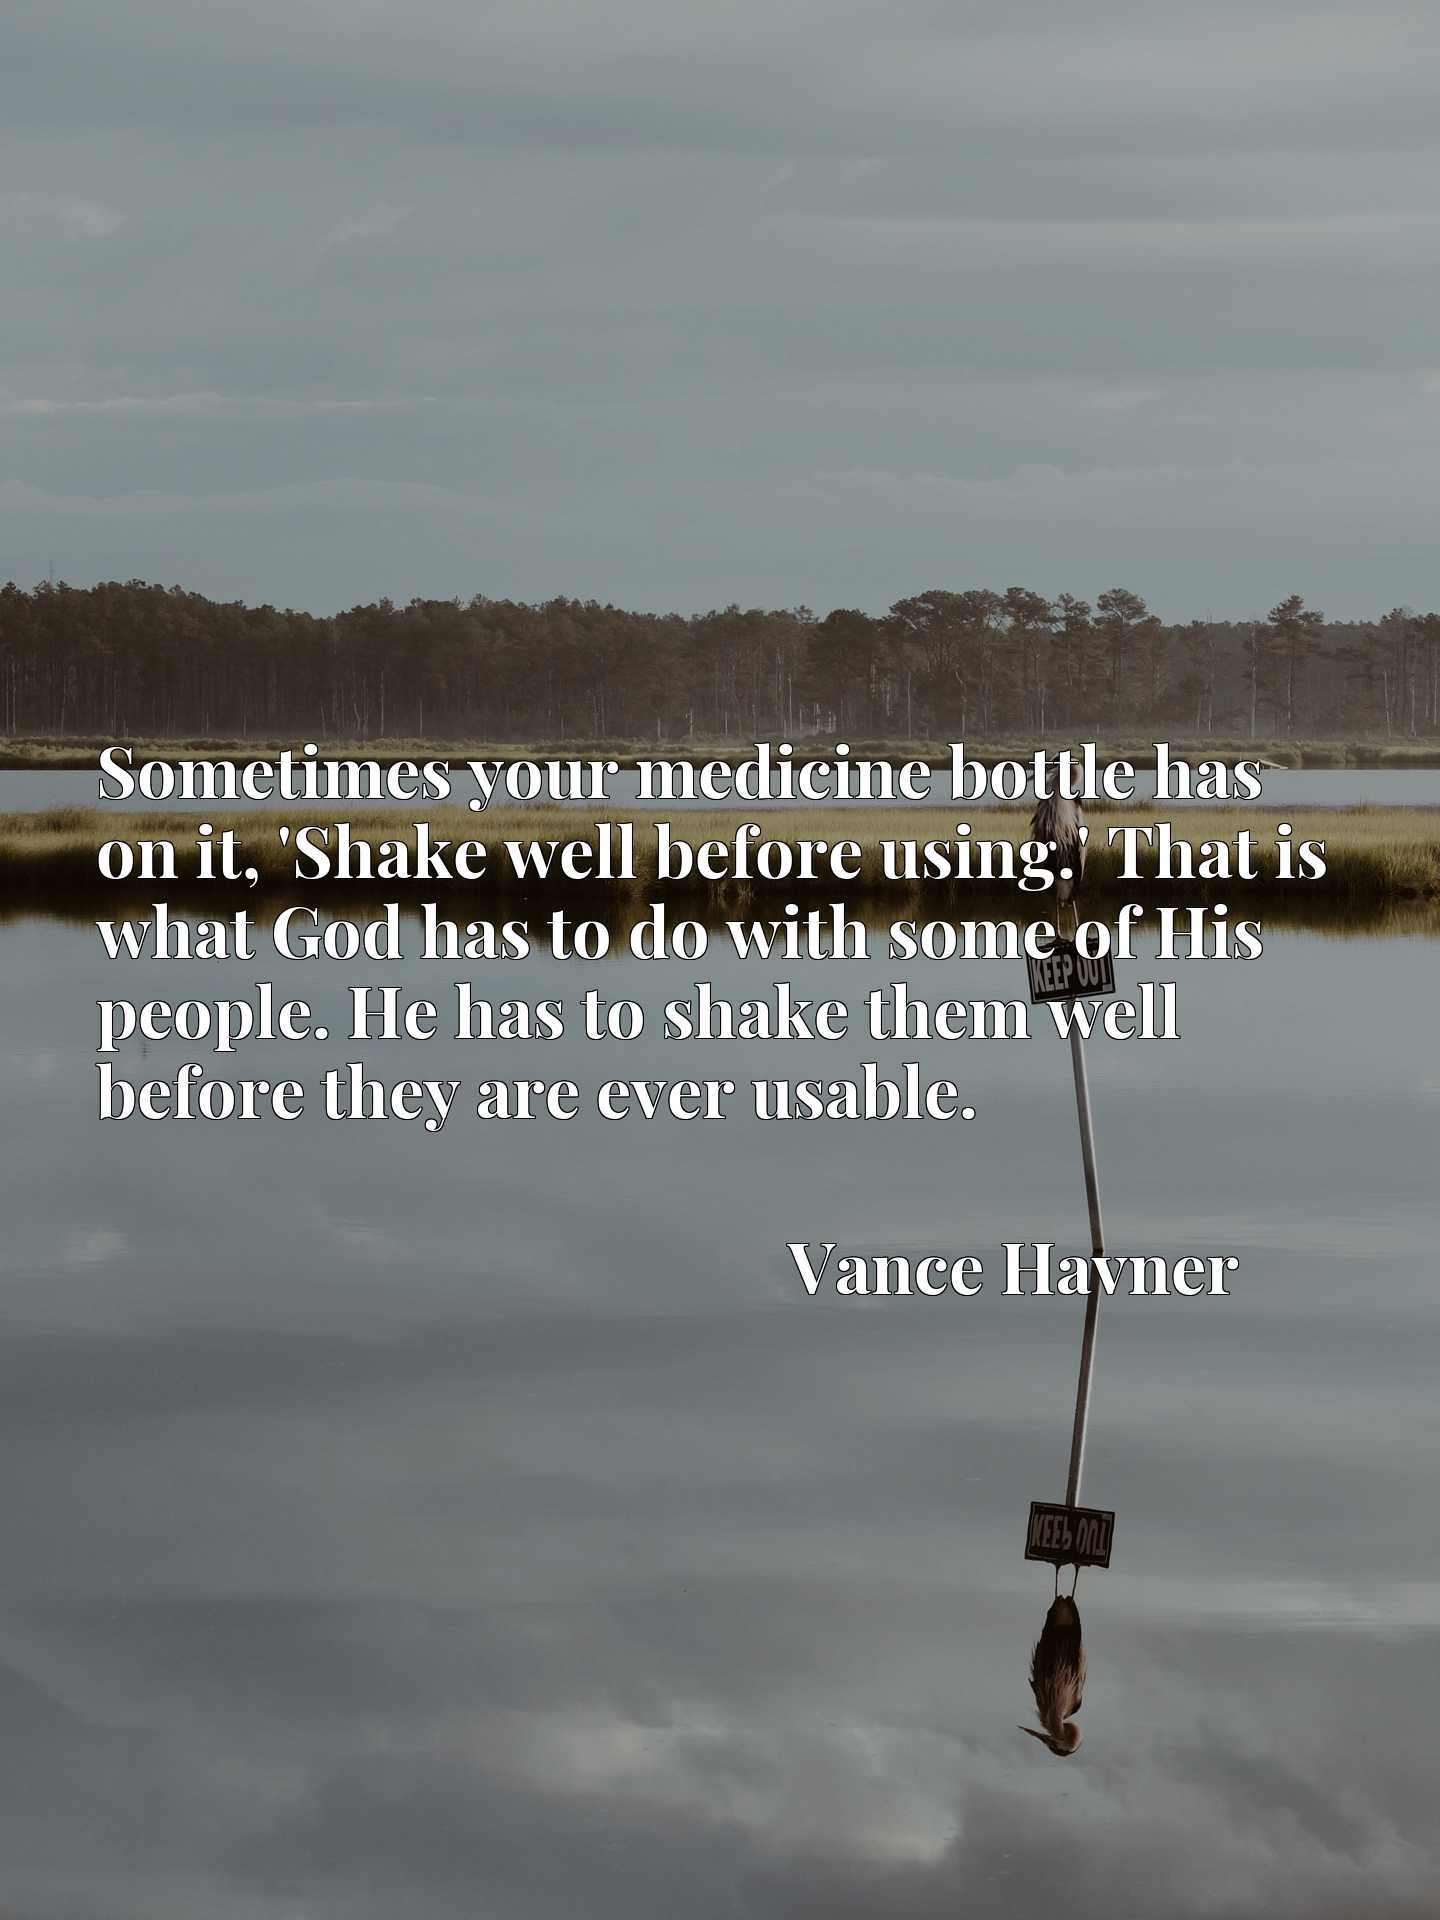 Sometimes your medicine bottle has on it, 'Shake well before using.' That is what God has to do with some of His people. He has to shake them well before they are ever usable.